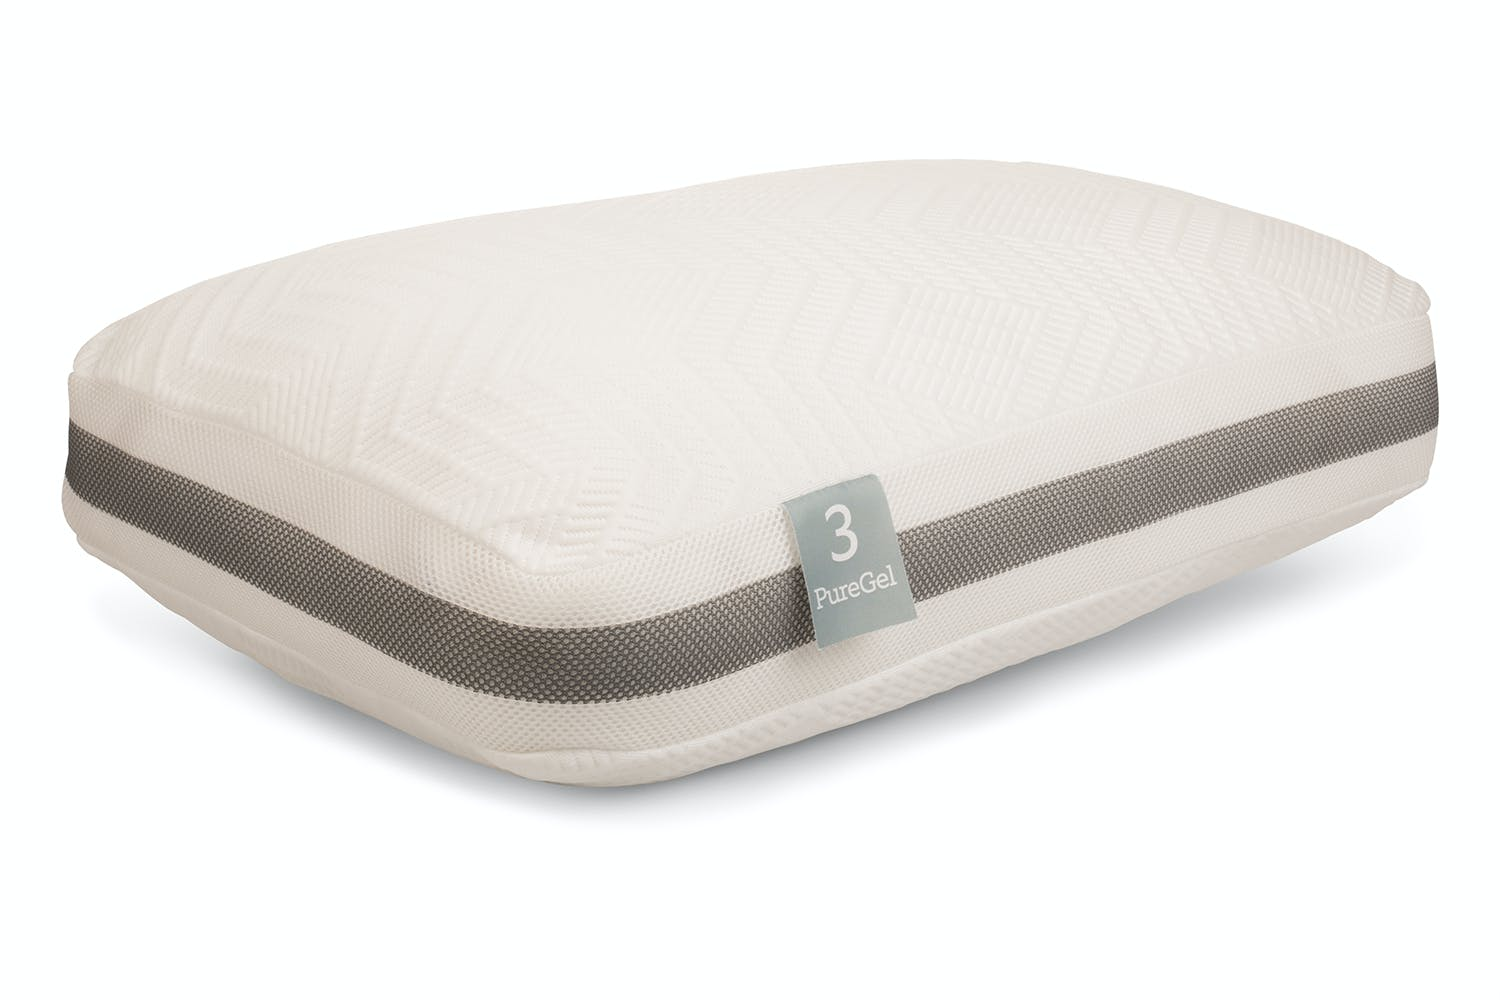 Sleep Studio Pillow | PureGel | 3